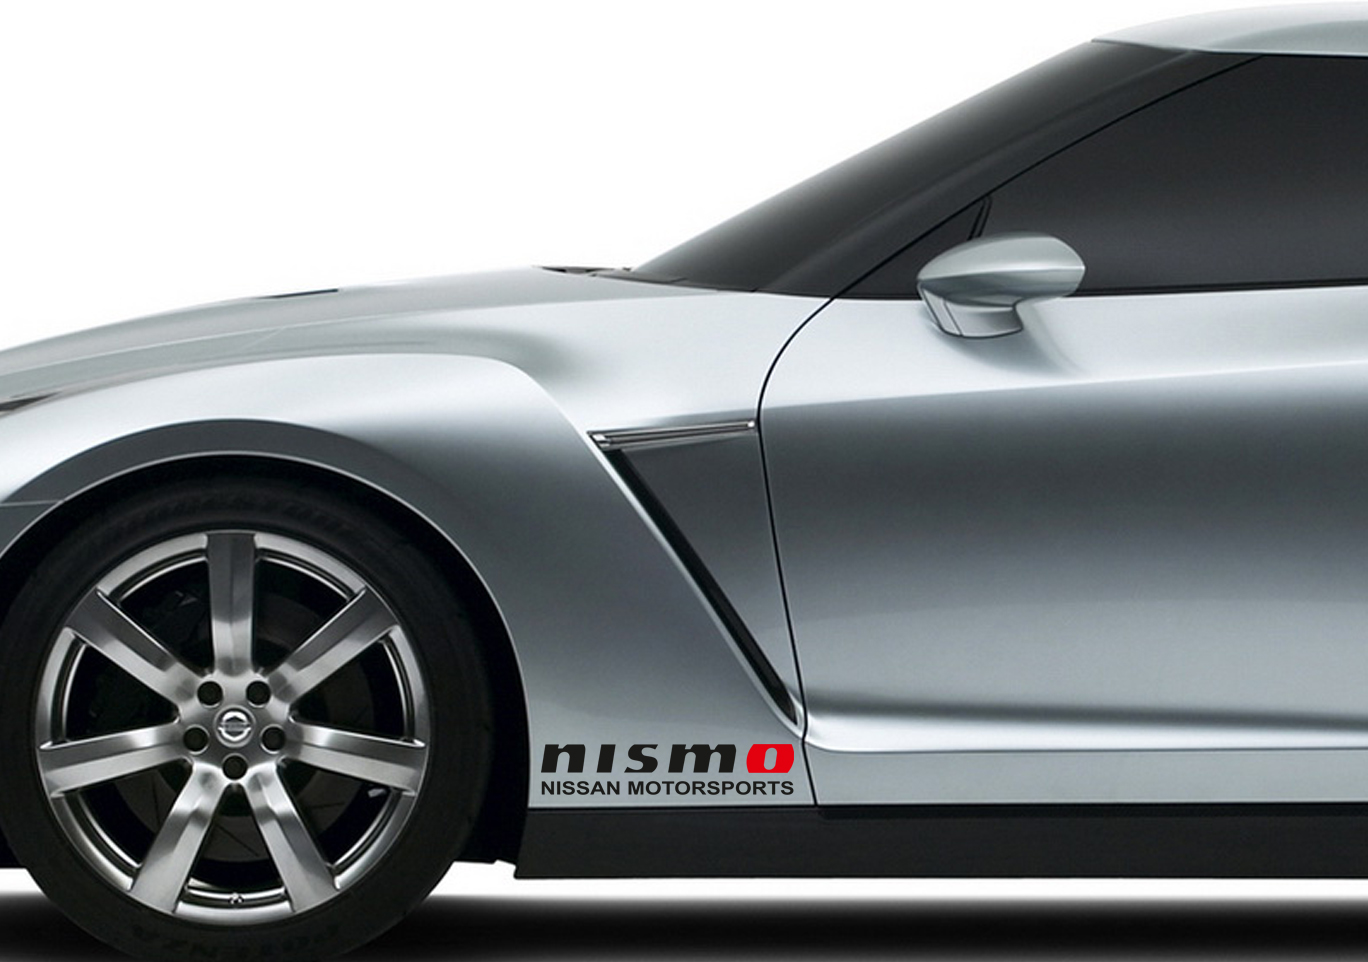 2x NISMO Nissan Motorsport 350z 370z GTR Skyline Racing Car Window Body Bumper Vinyl Sticker Decal